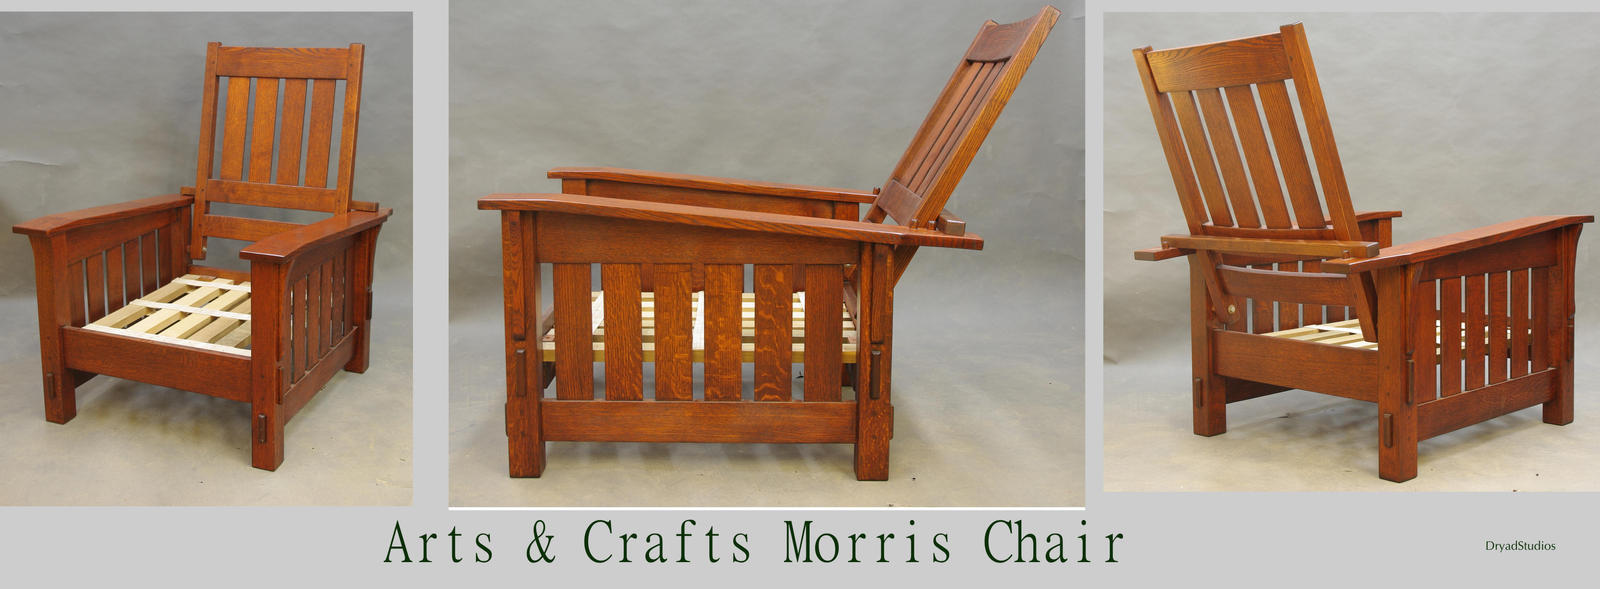 Arts and crafts chairs -  Arts And Crafts Morris Chair By Dryadstudios